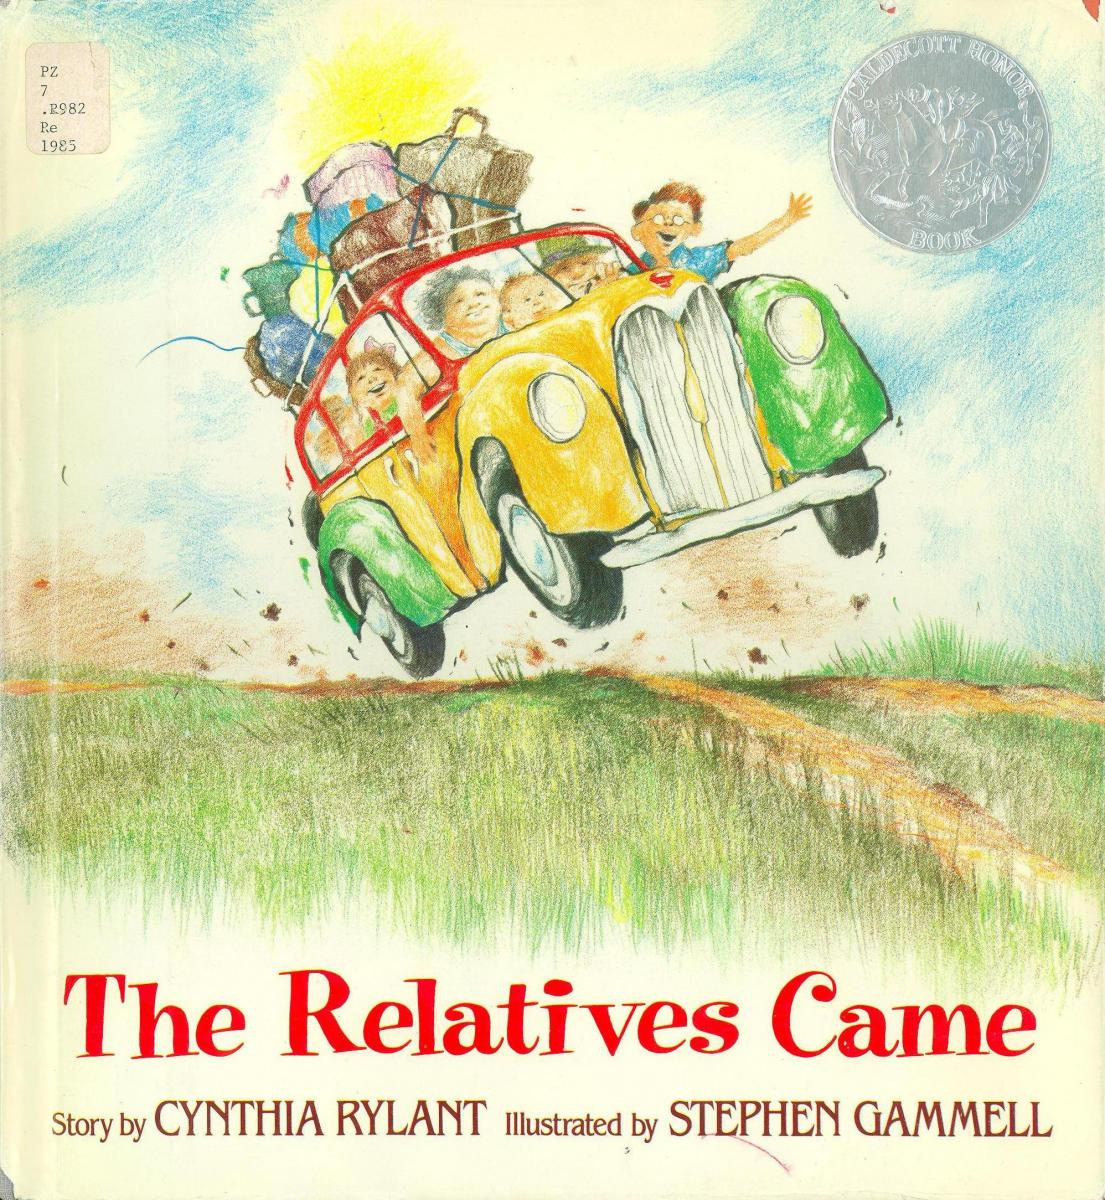 The Relatives Came - Book Cover